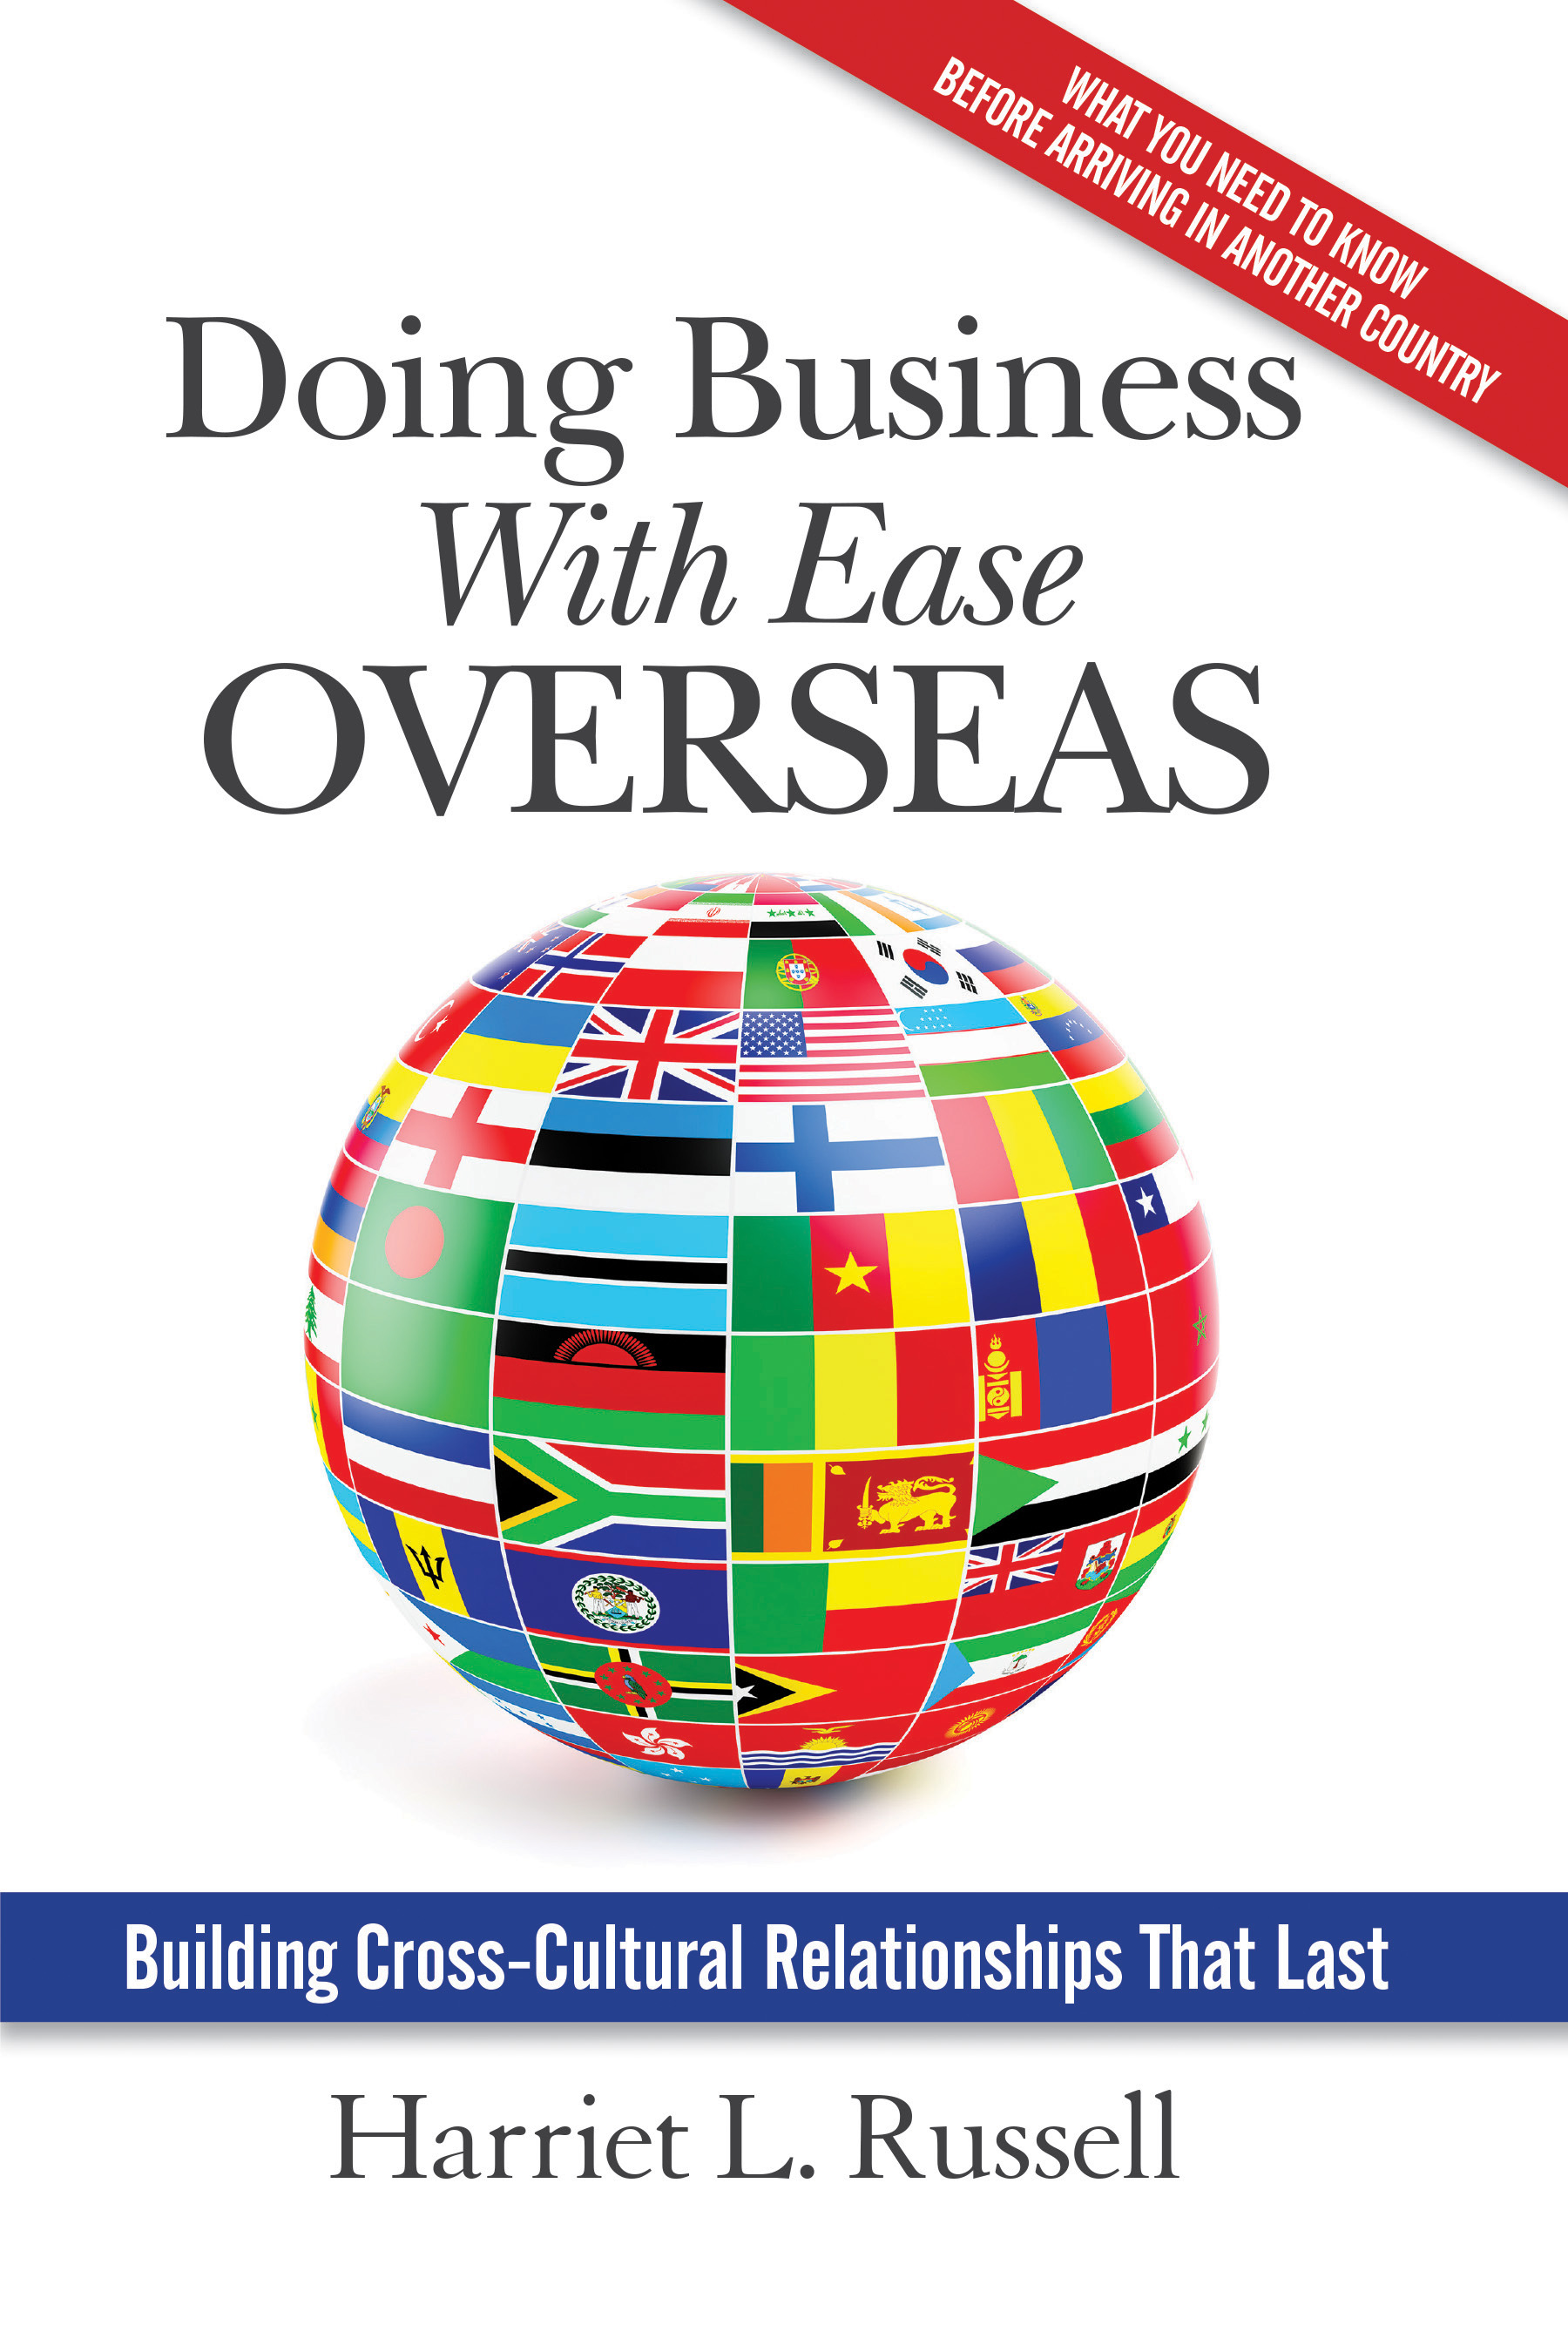 Doing Business with Ease Overseas